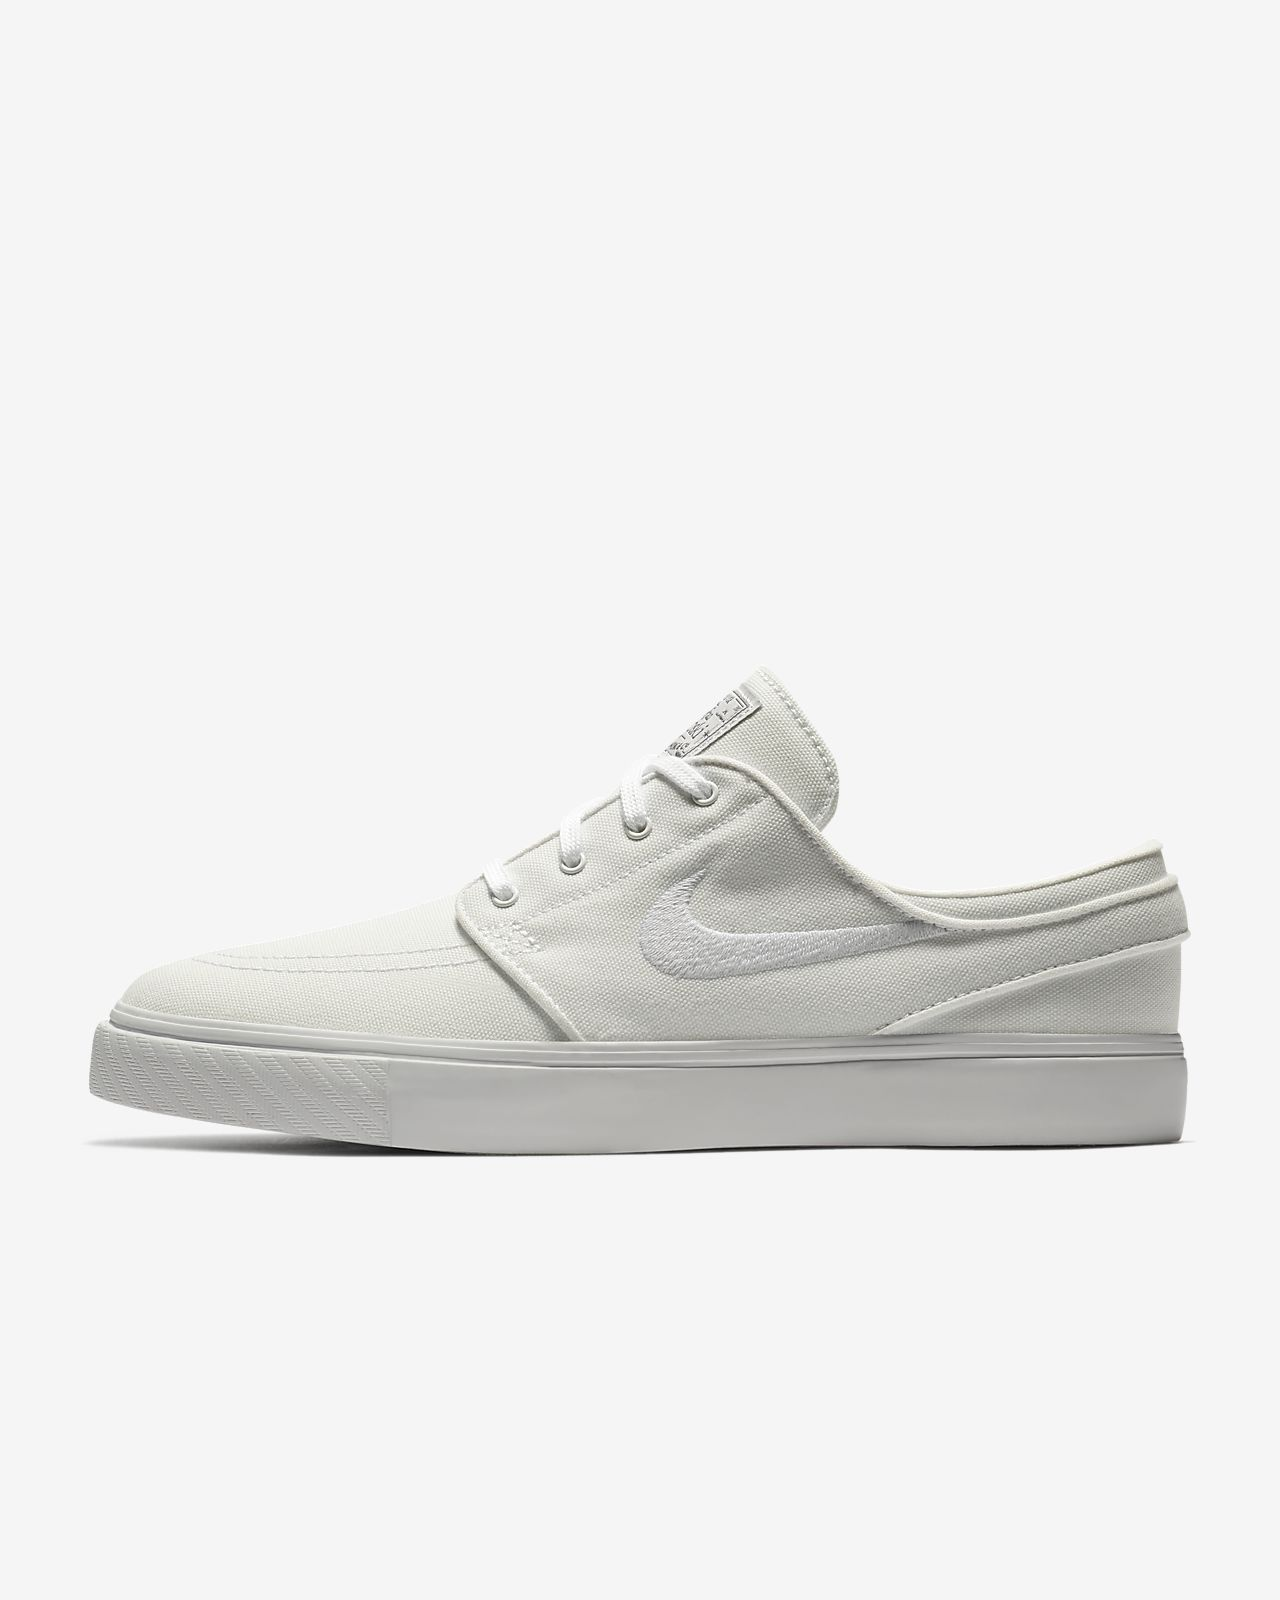 8b064129c32d ... Nike SB Zoom Stefan Janoski Canvas Men s Skate Shoe